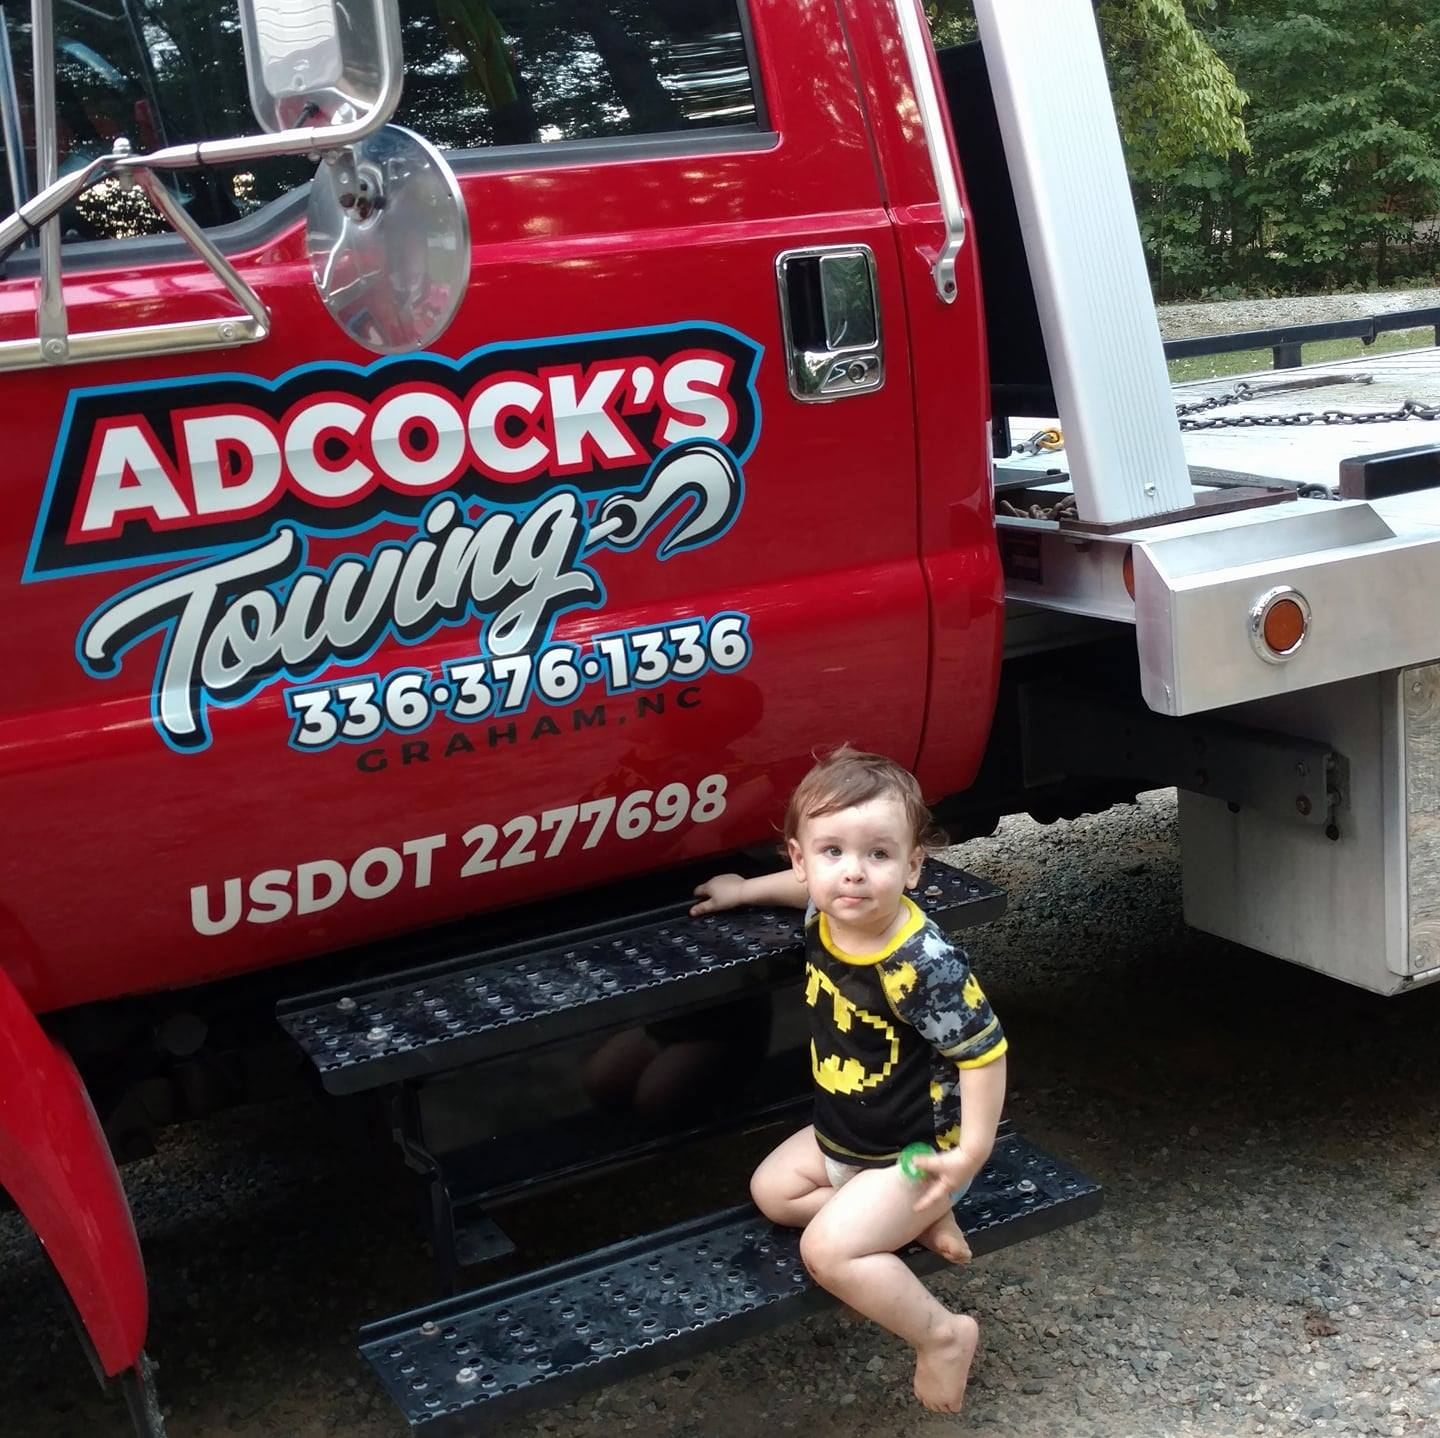 Adcock's Towing